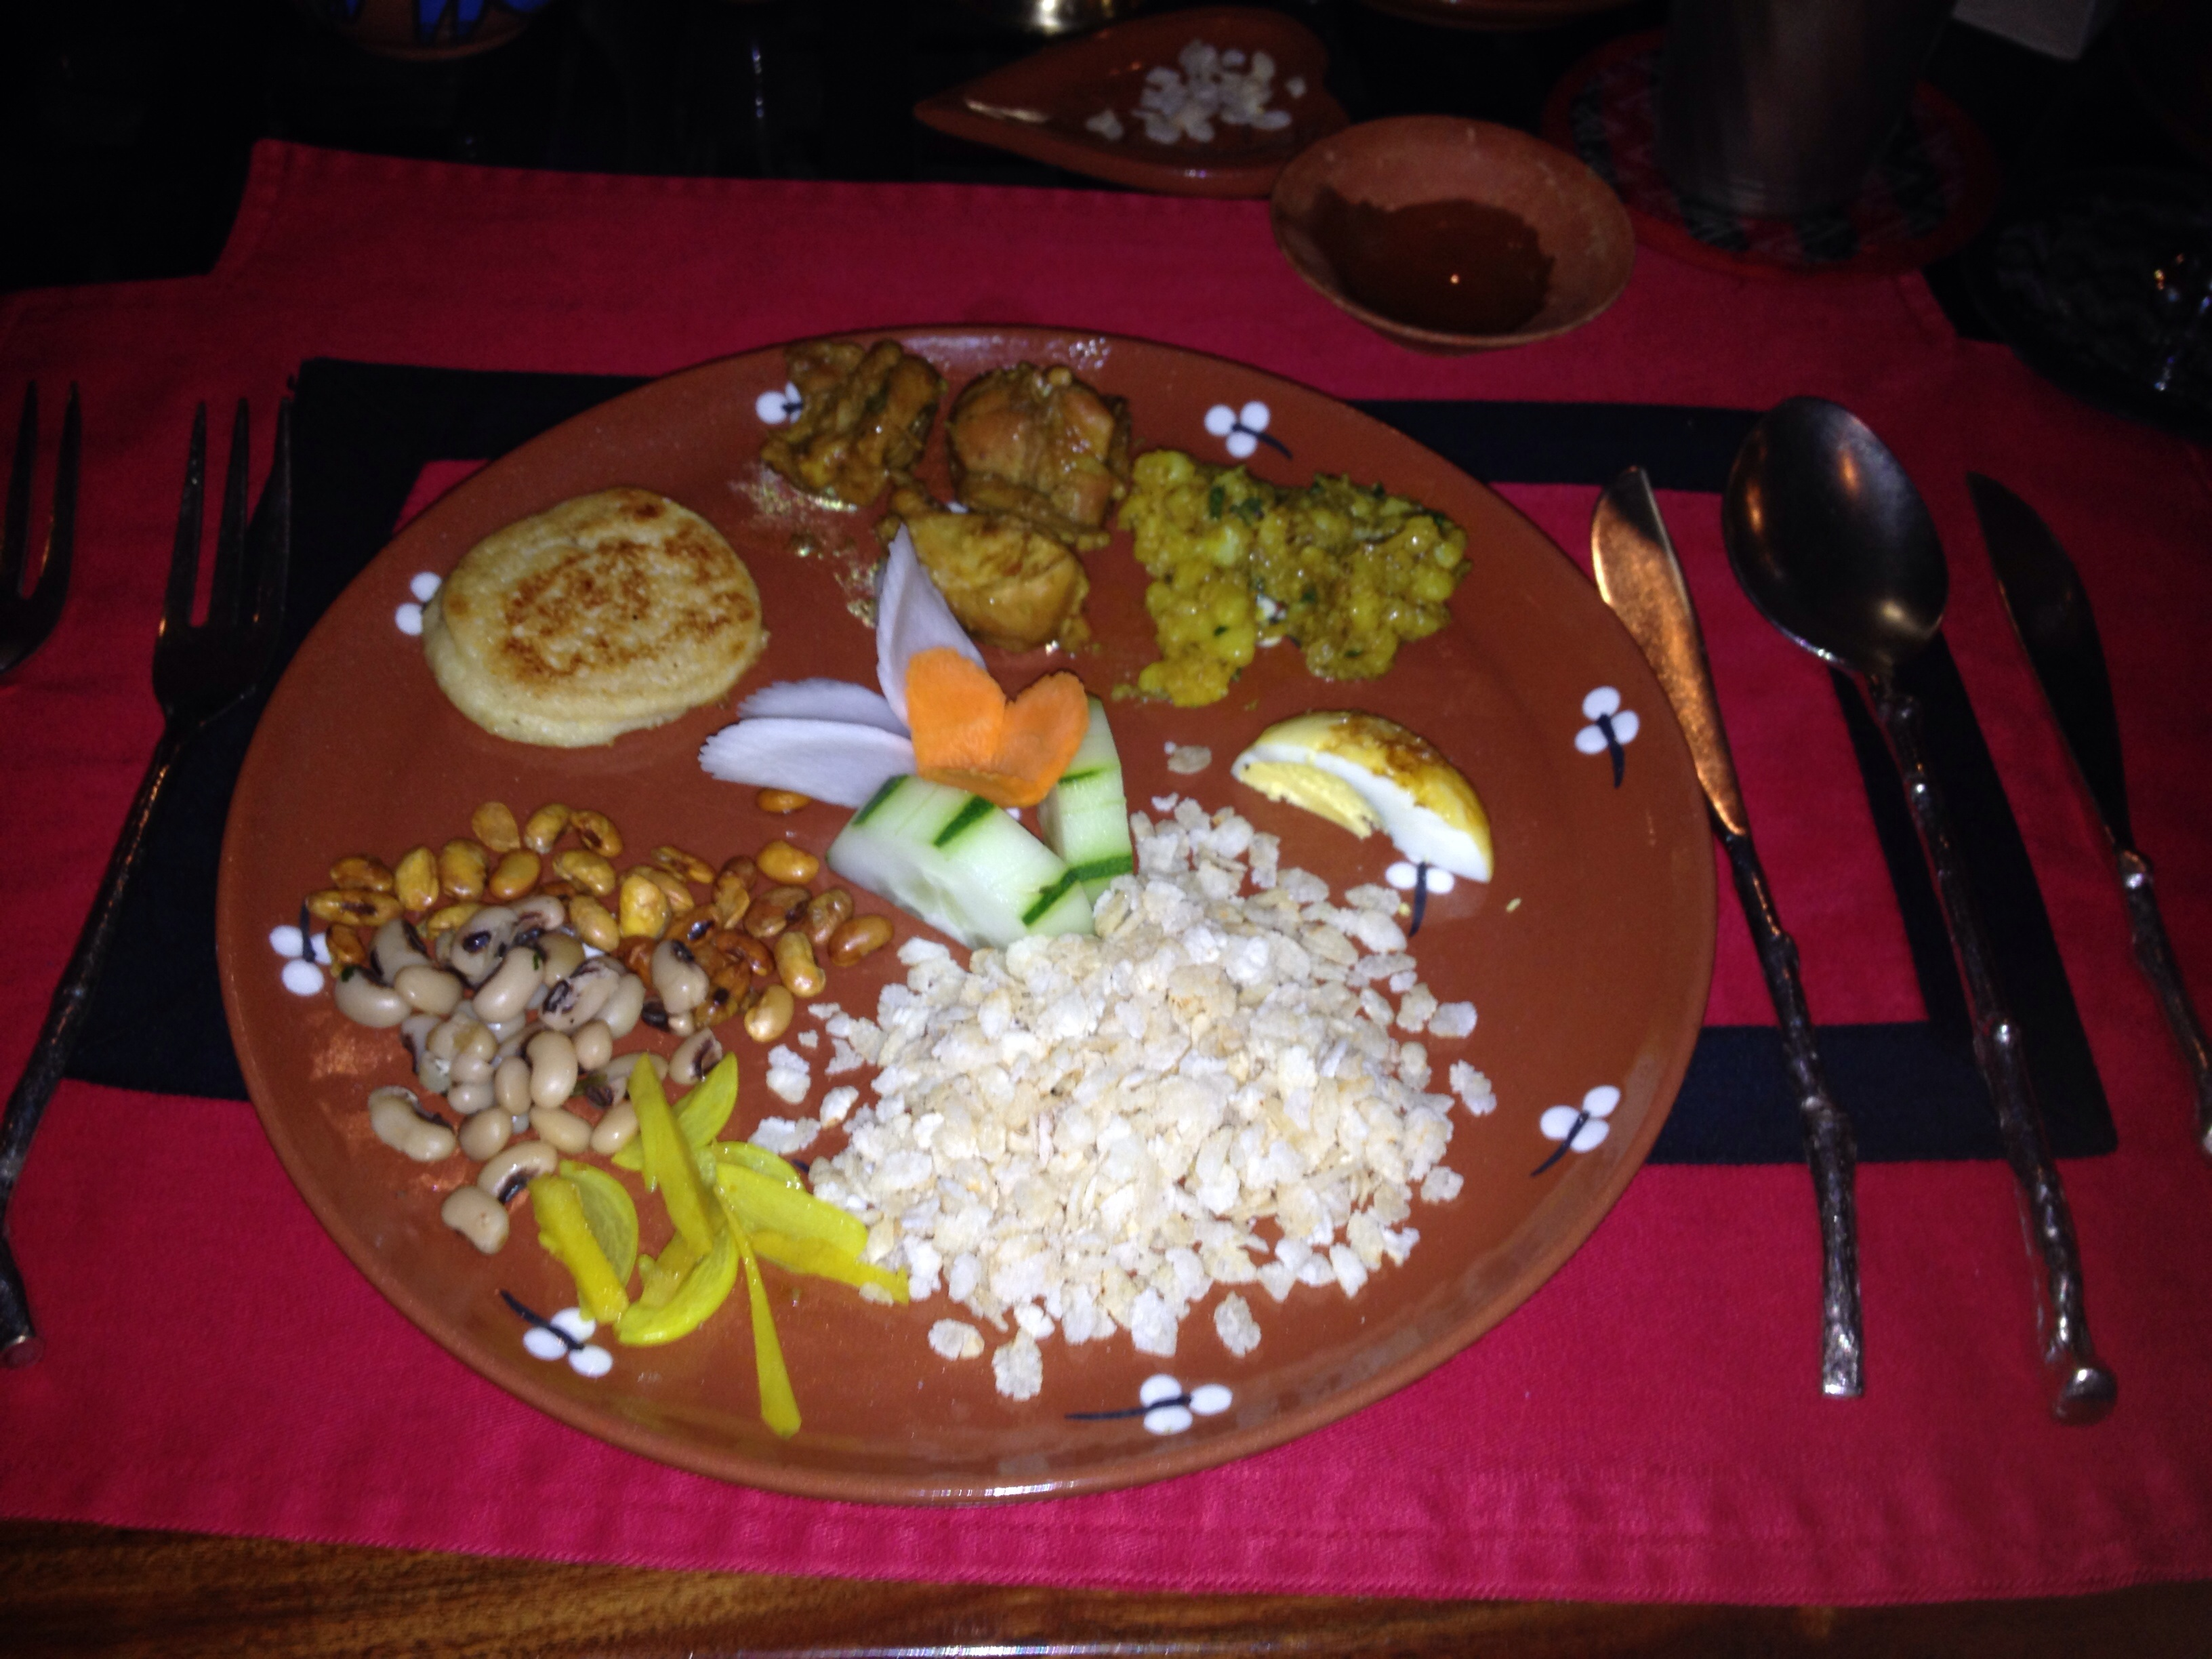 Nepalese Dinner First Course: Assortment of Hors D'Oeuvres served during religious ceremonies